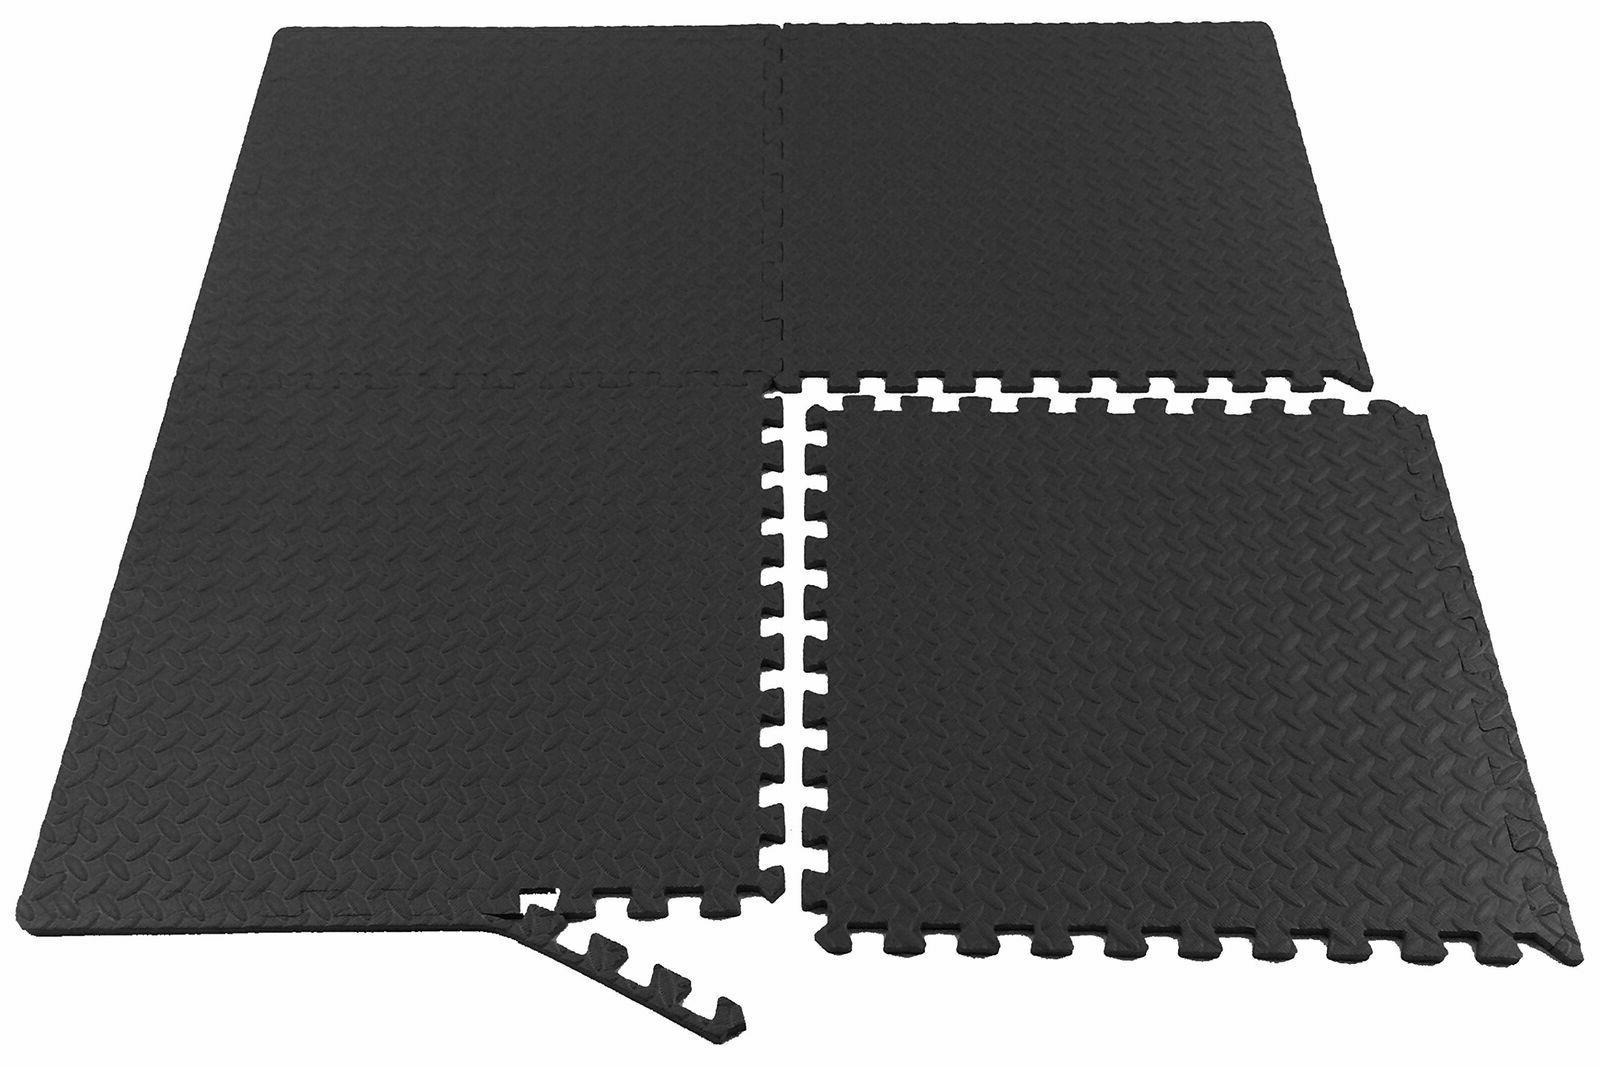 GYM RUBBER FLOORING Garage Home 24 Mat